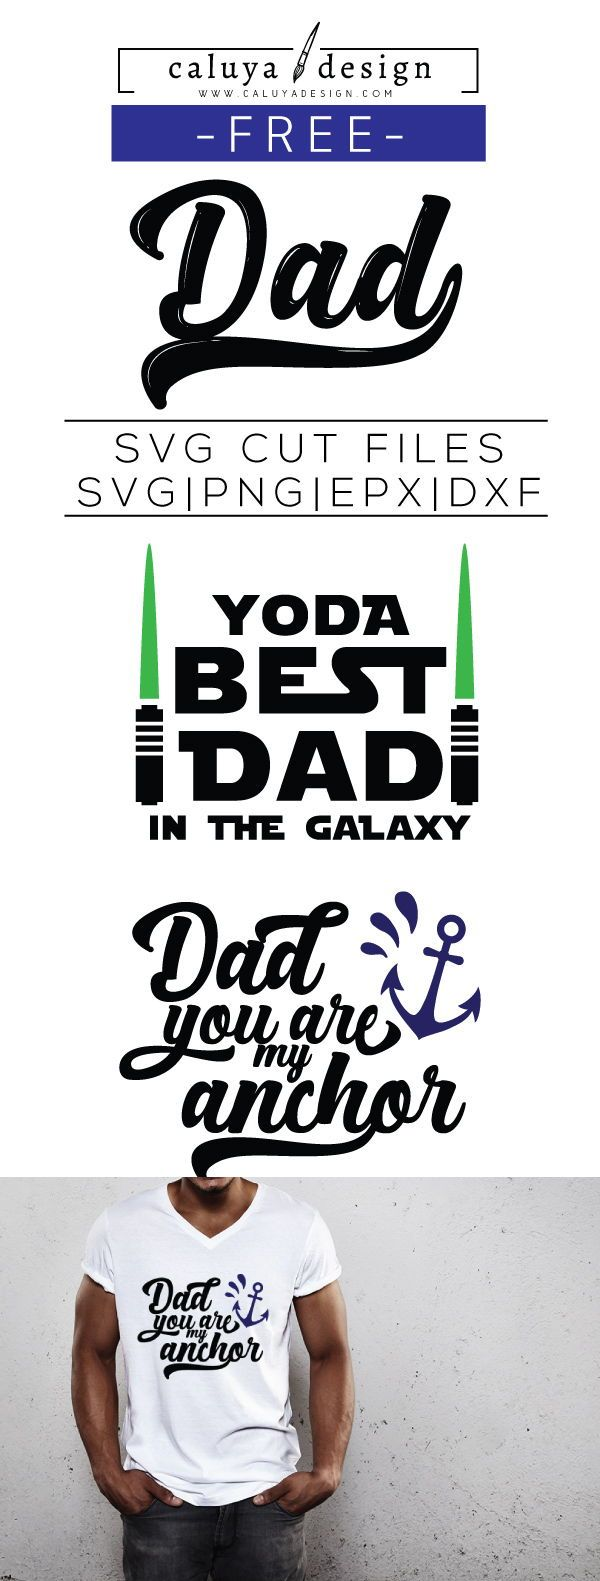 FREE SVG Cut File Father's Day quote. Yoda Best Dad SVG cut file. Printable ...